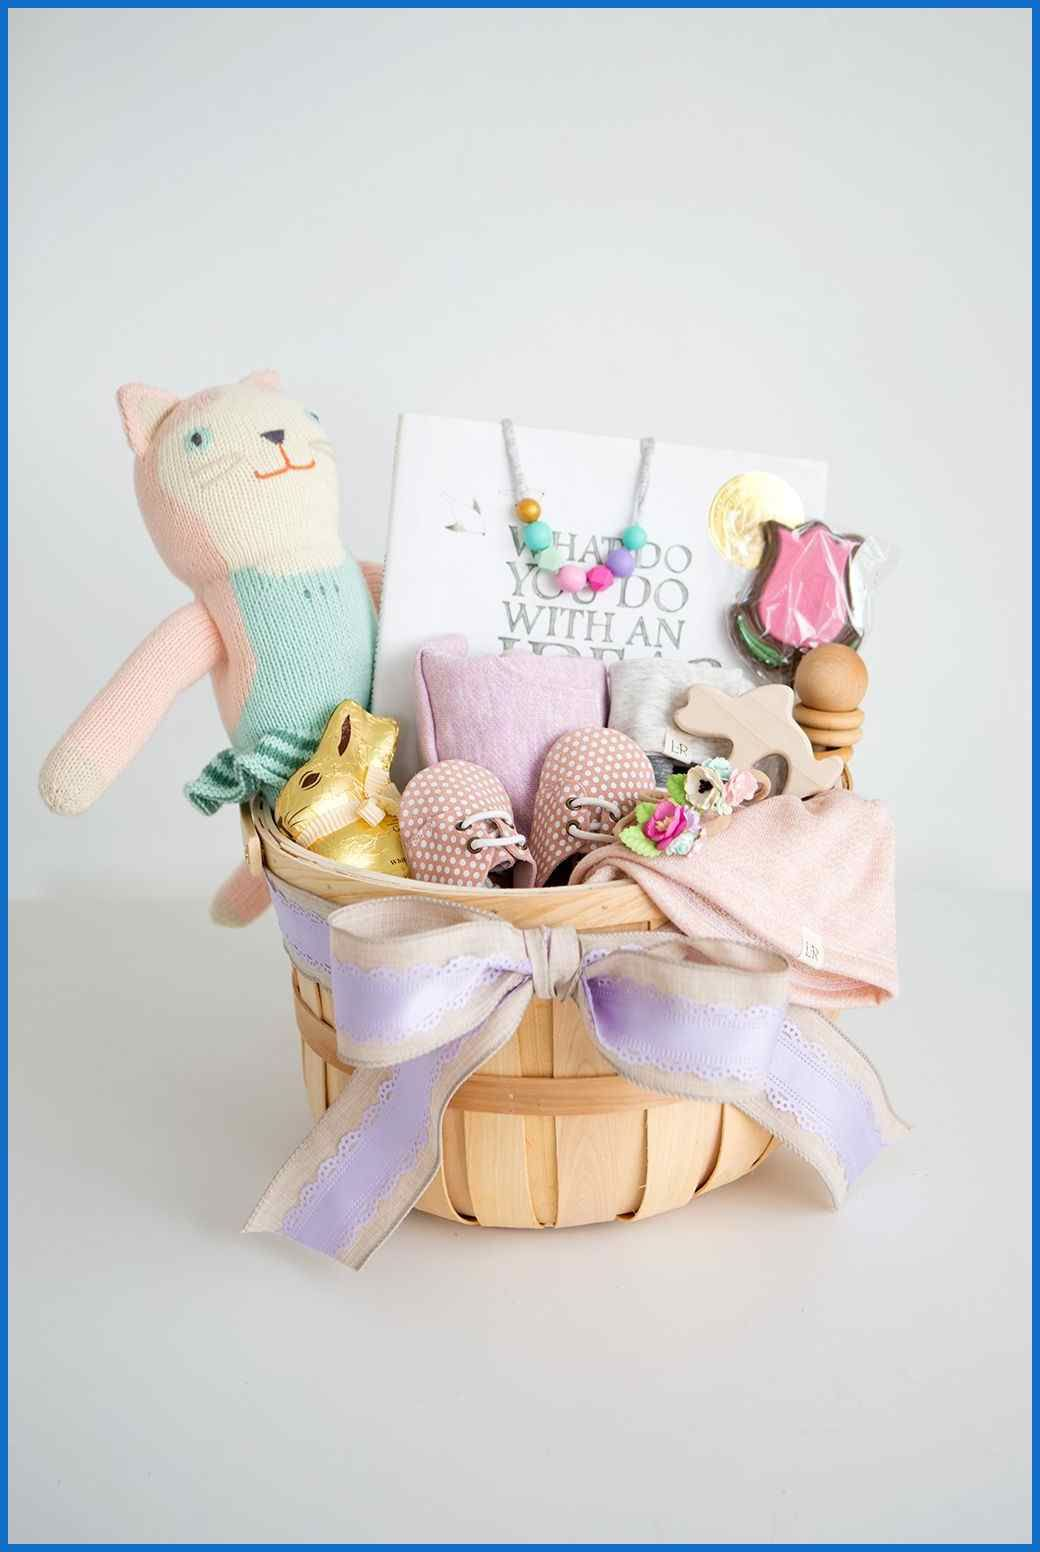 26 Cute Homemade Easter Basket Ideas Easter Gifts For Kids And Adults Homemade Easter Baskets Easter Gifts For Kids Easter Basket Diy